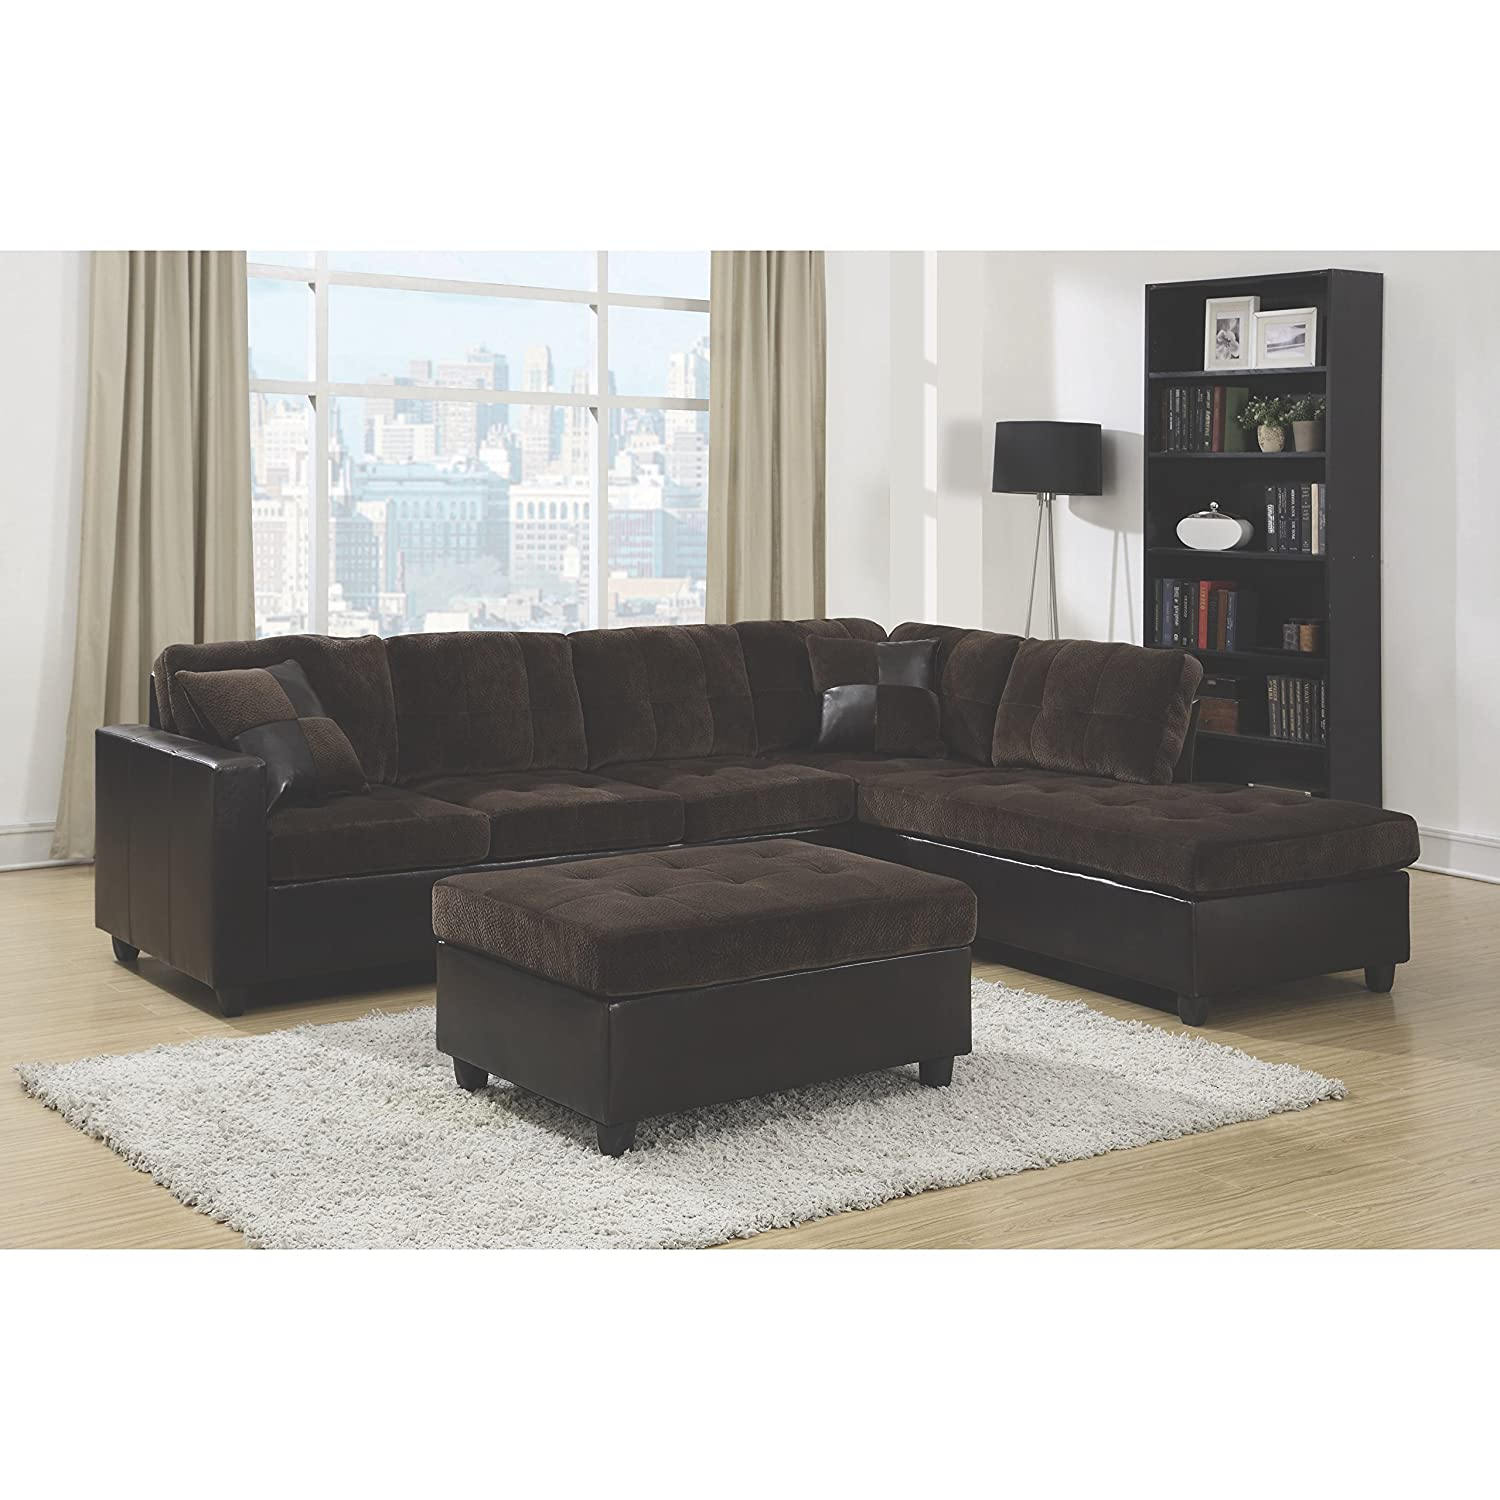 Amazon.com: Coaster Home Furnishings 505645 Casual Sectional Sofa,  Chocolate: Kitchen U0026 Dining Part 95